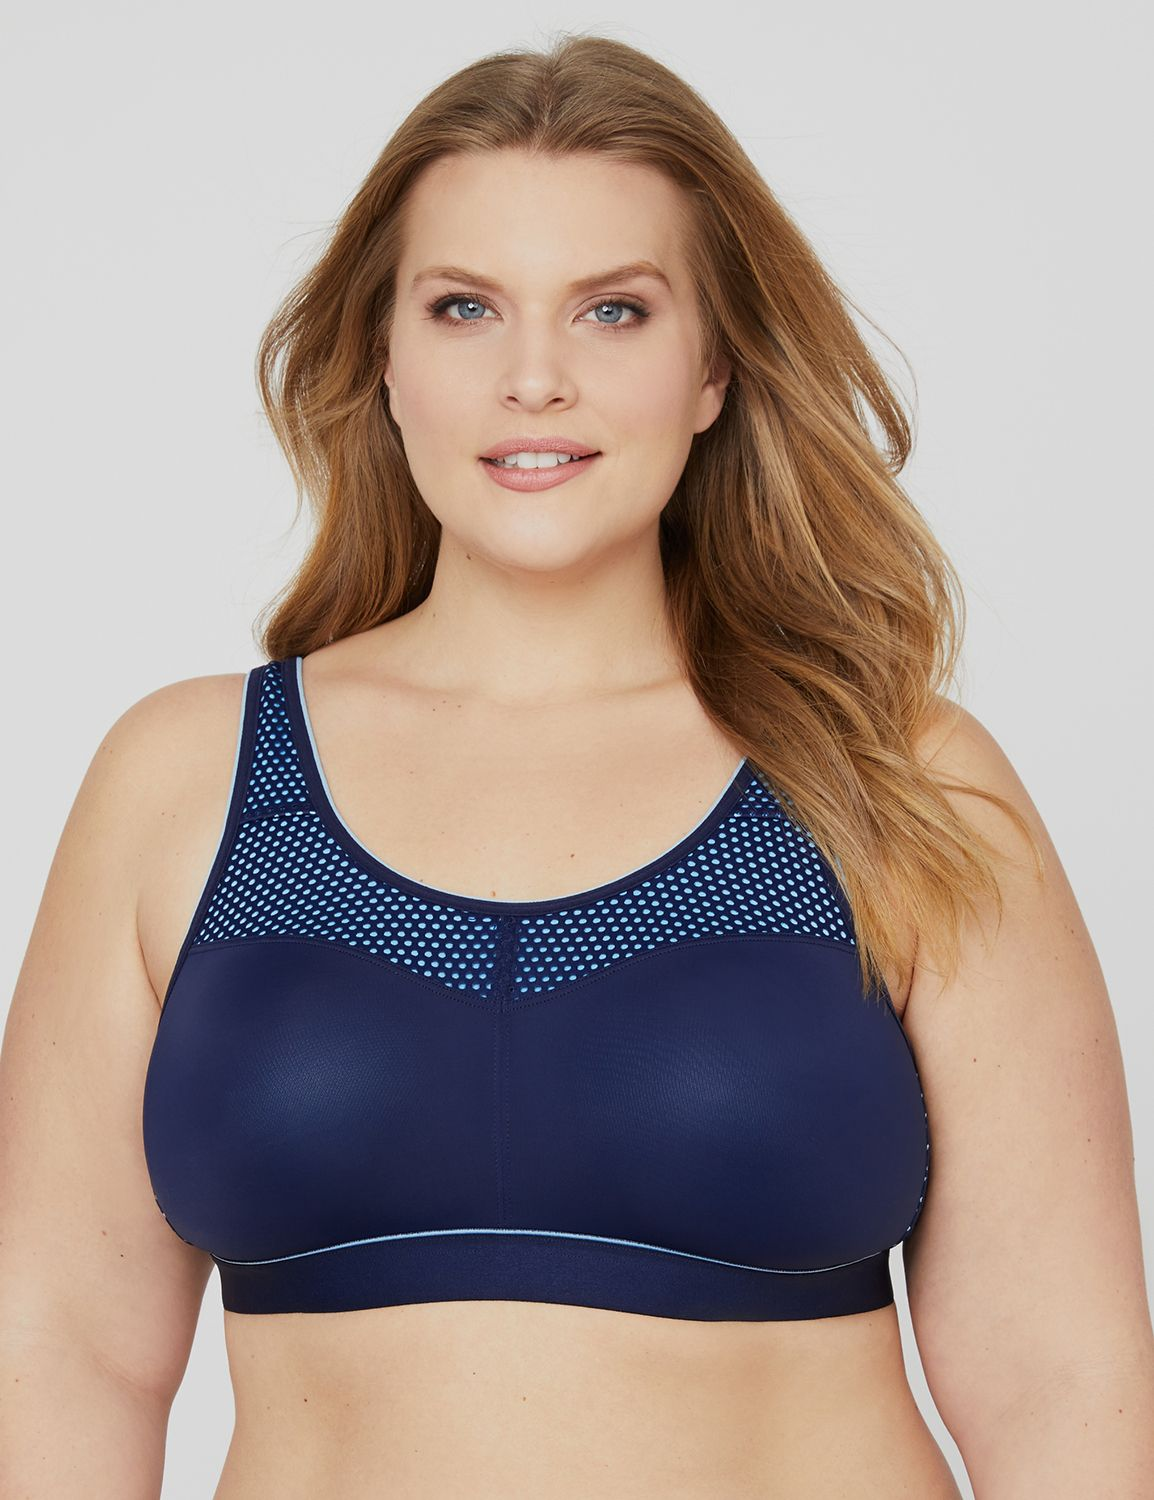 Exhale Active Bra Strappy UW Sport Bra MP-300095075